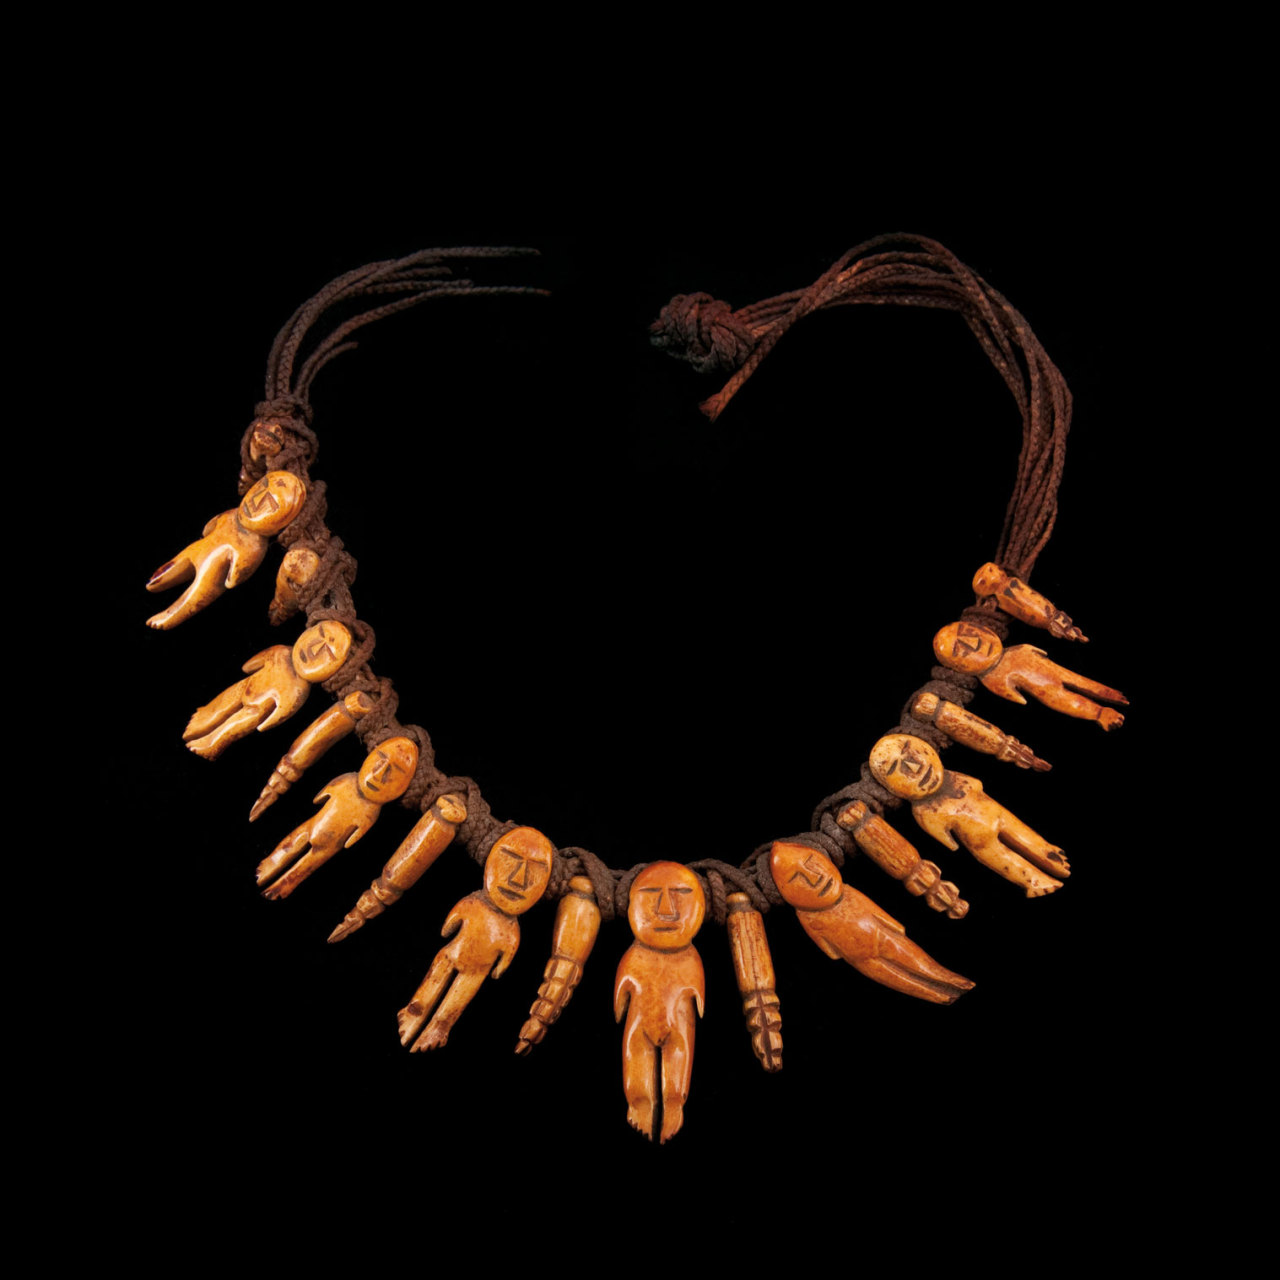 Tongan necklace, the figurative composition of this adornment is extremely rare, it carries eight figures and nine other pendants, all pierced for suspension and bound by sennit cord. This Oceanic work of art, crafted from bone for a person of high standing. Believed to be female goddess effigies, these sacred figurines have at times been accorded to high ranking Tongan women such as the Mehekitanga, an important family relation in Tongan culture, or the Tamaha, the niece to the King of Tonga through his sister.